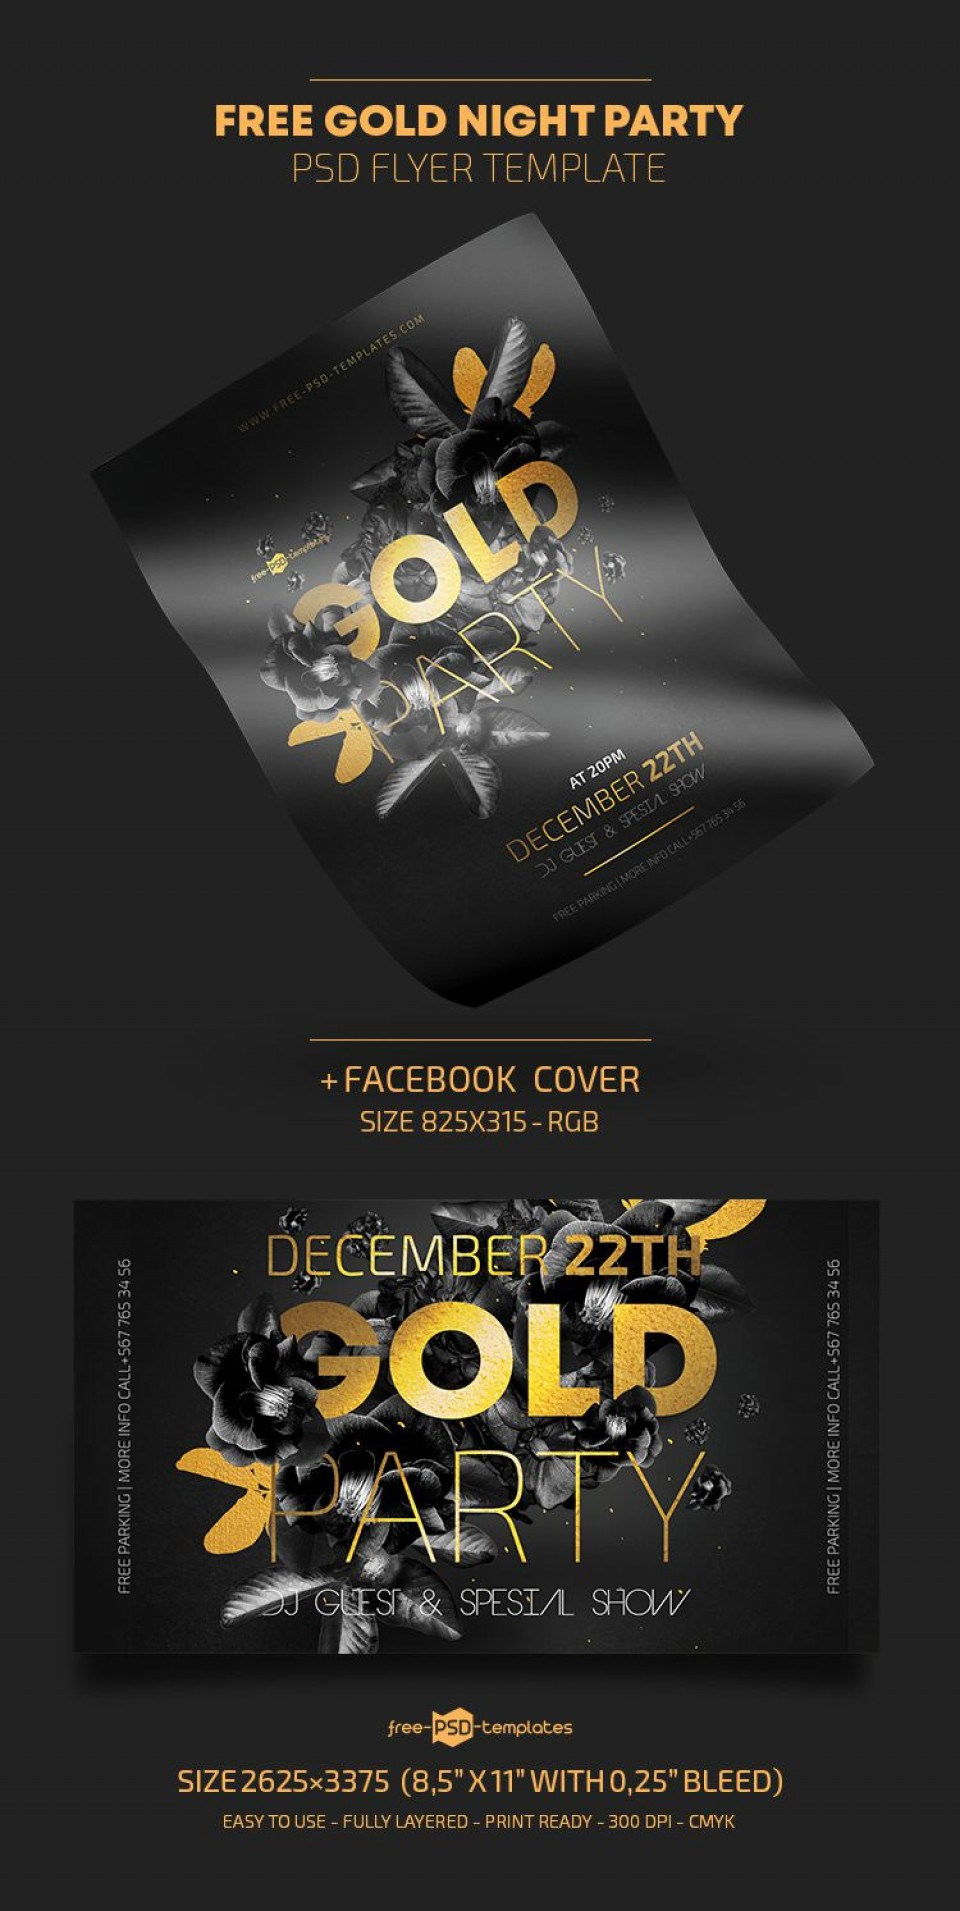 009 Marvelou Free Party Flyer Template For Photoshop Picture  Pool Psd Download960